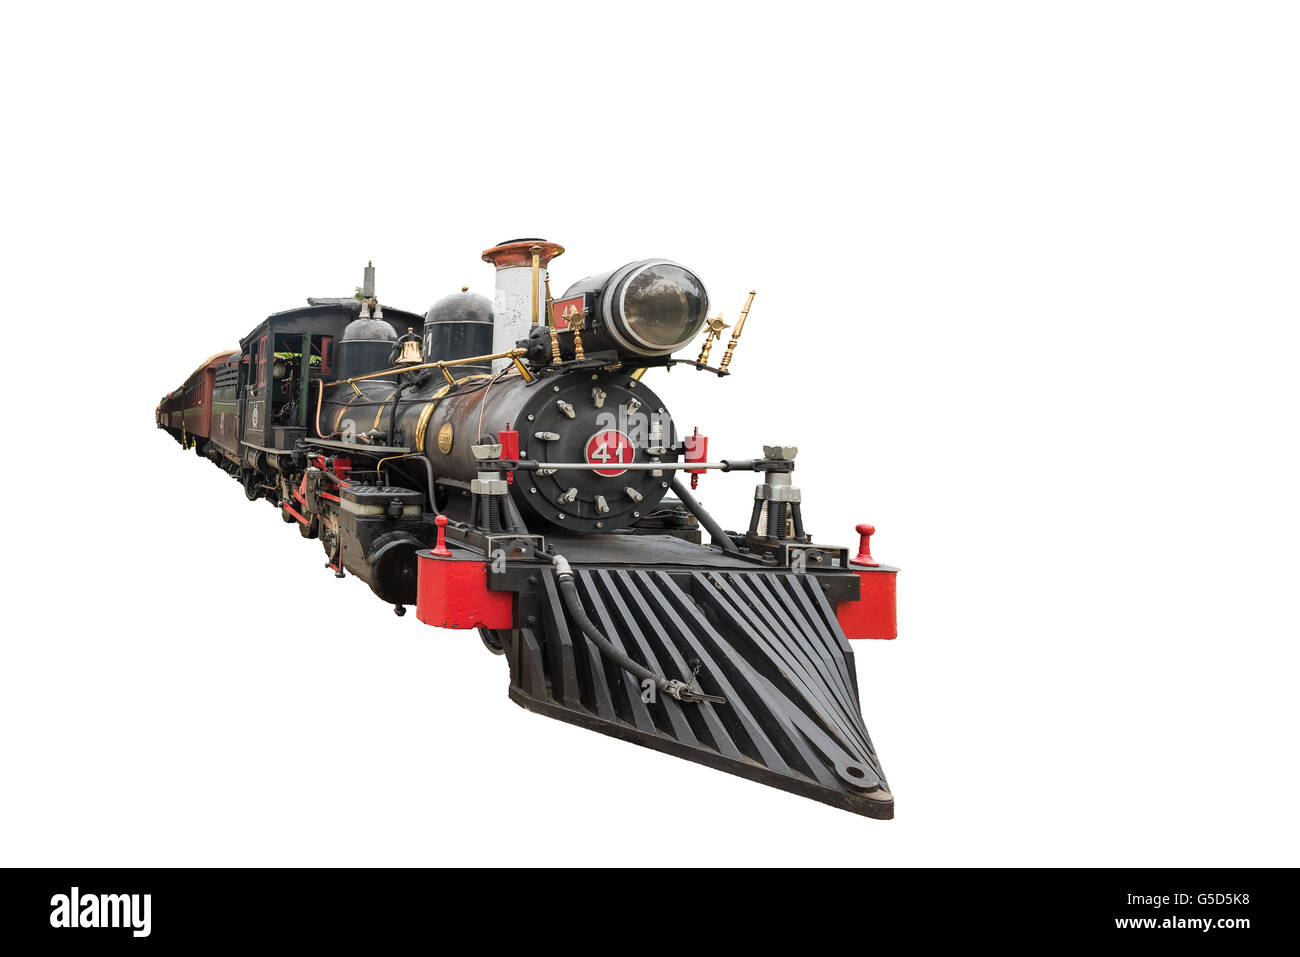 Old Mary Smoke train in Tiradentes, a Colonial Unesco World Heritage city, on white isolated background. - Stock Image